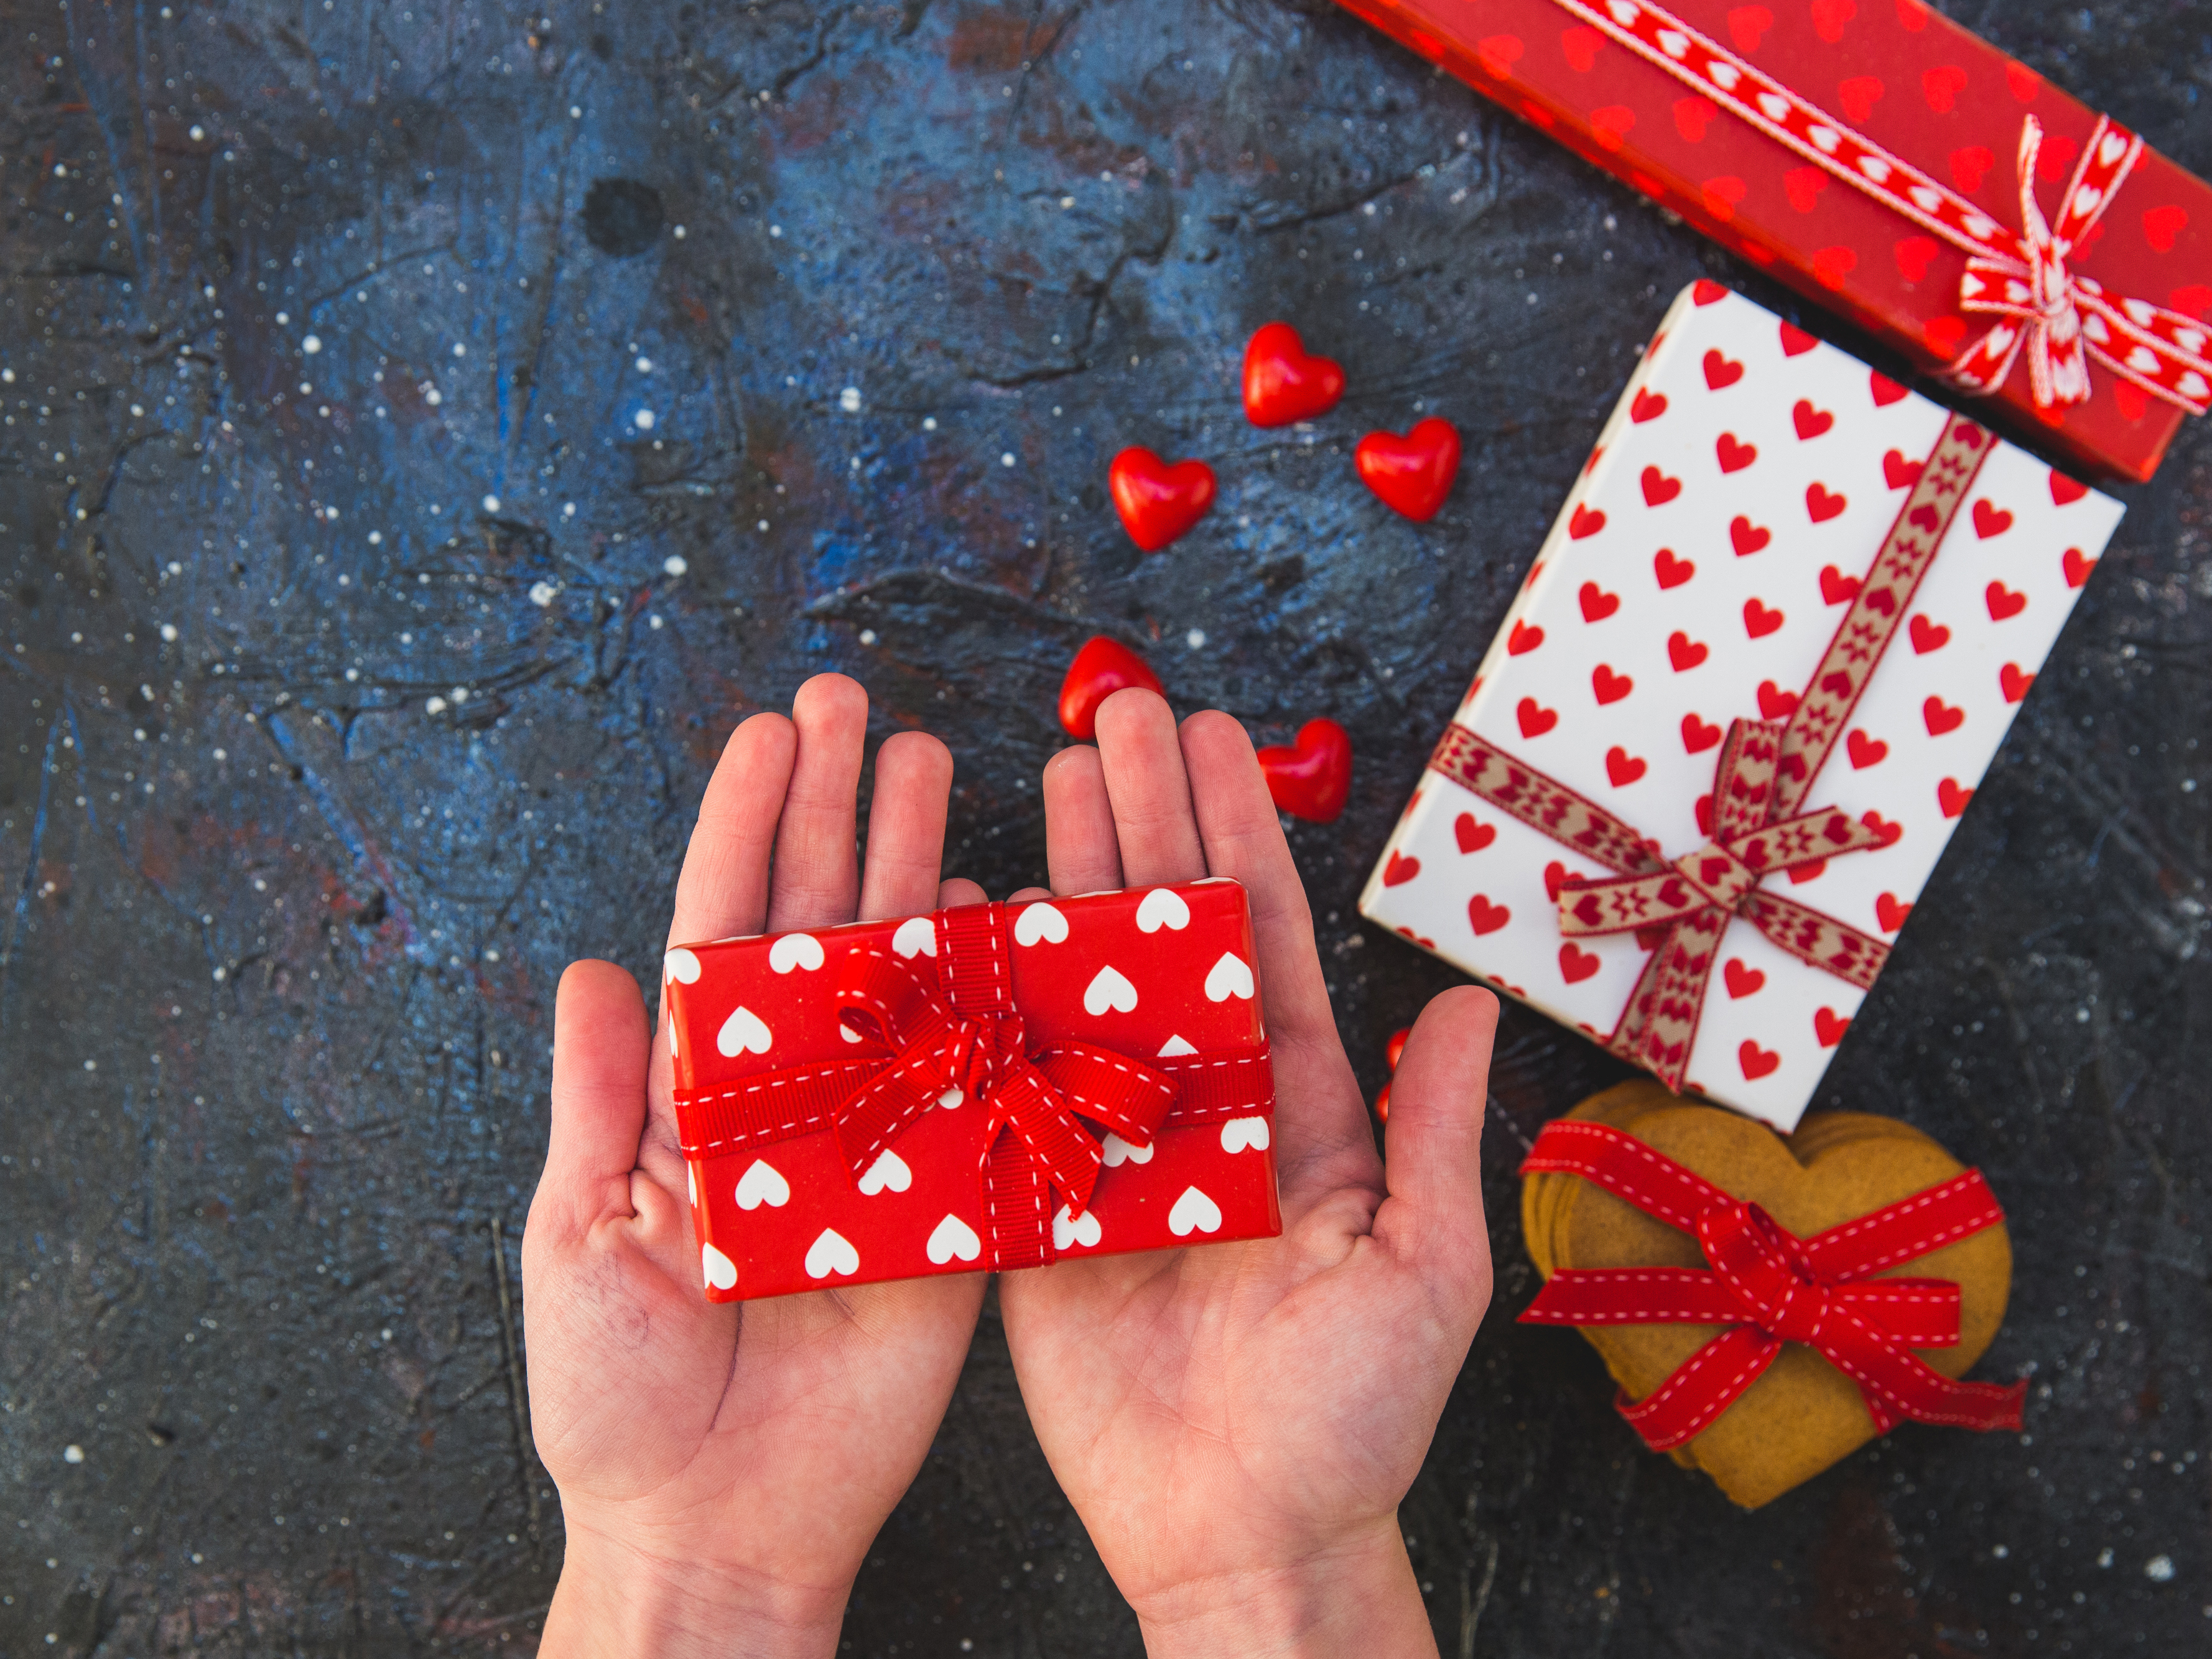 13 Valentine S Day Gifts For Her Under 50 National Globalnews Ca